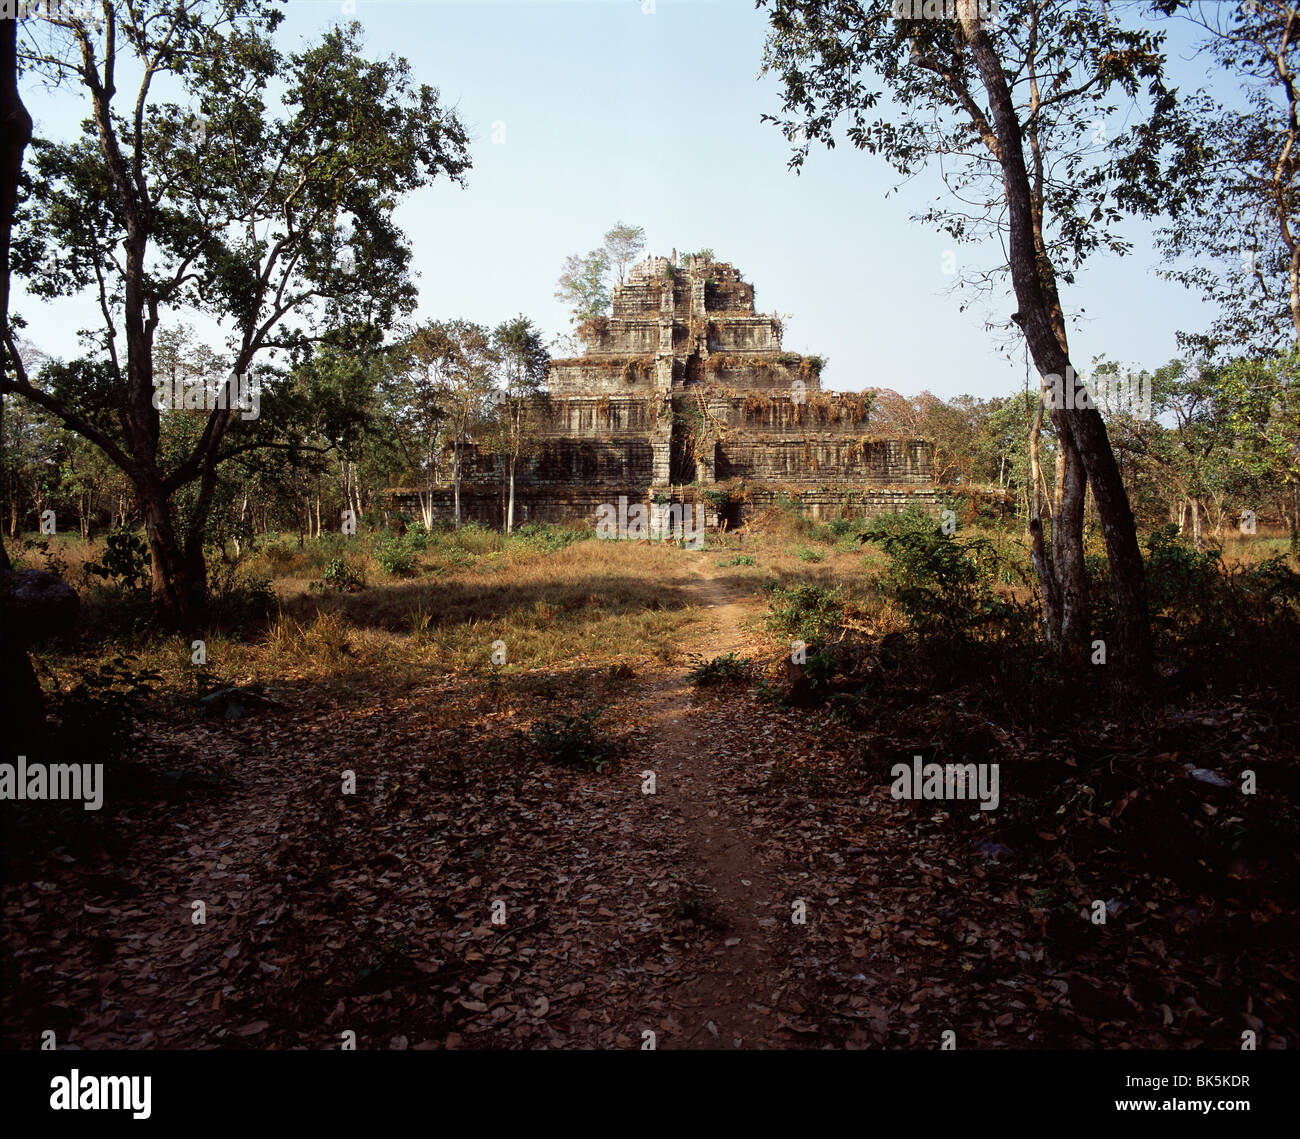 Prang Prasathom, dating from the 10th century, Koh Ker, Cambodia, Indochina, Southeast Asia, Asia - Stock Image